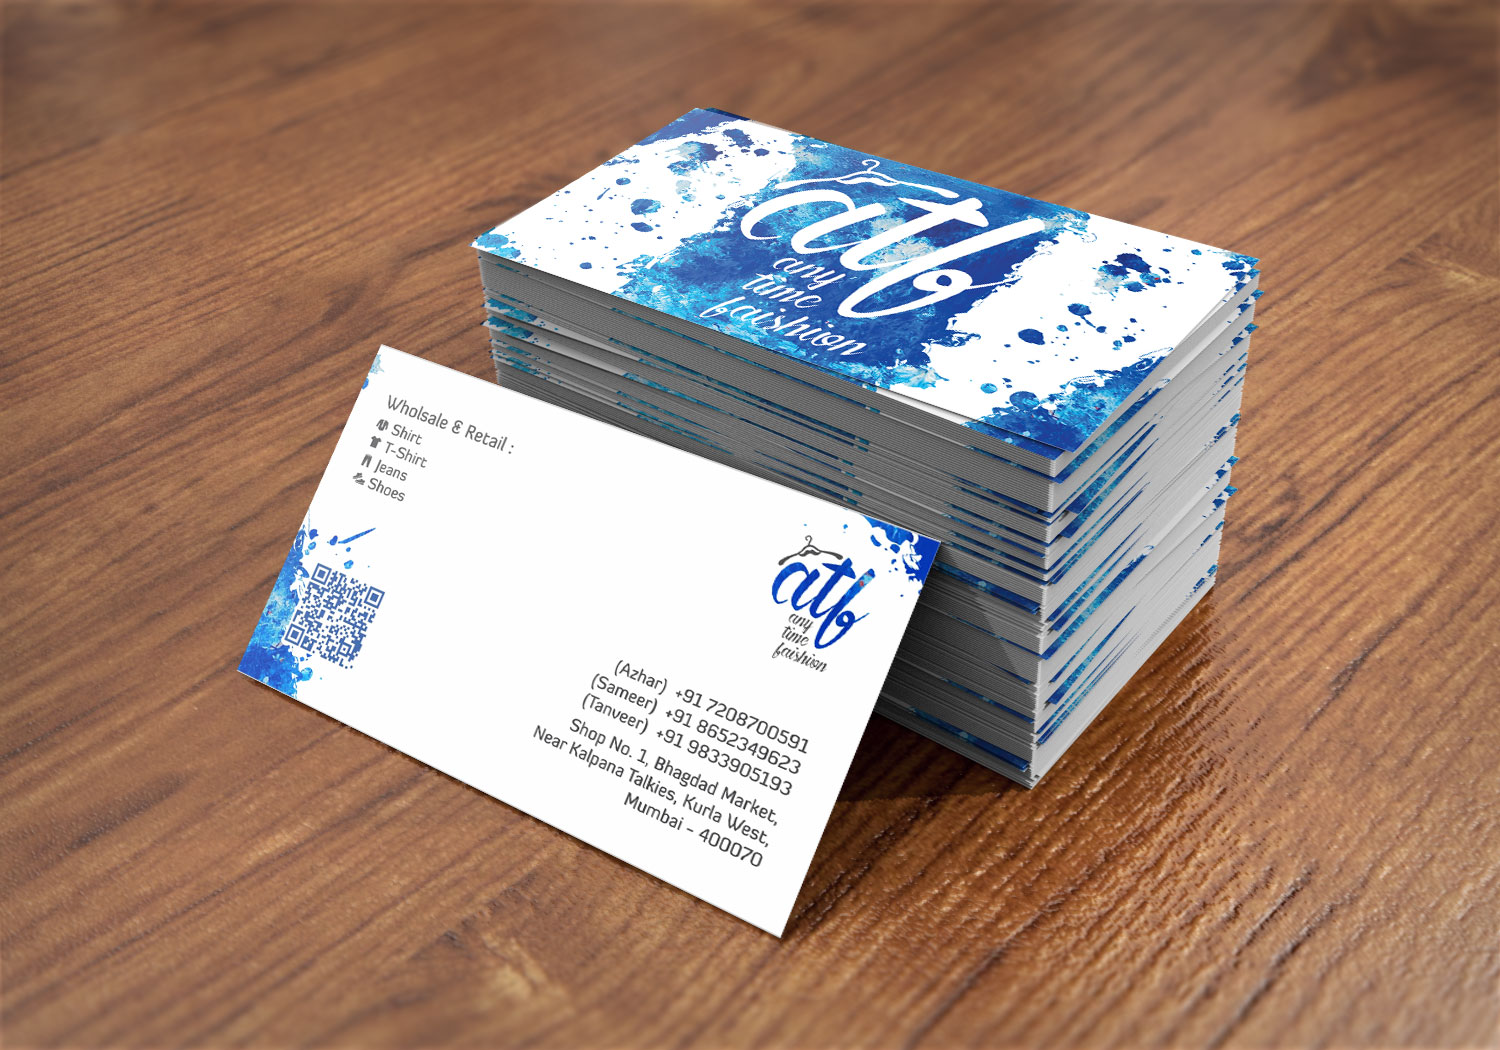 Visiting card design ideacloud creative ideacloud ltd idea cloud newsletter colourmoves